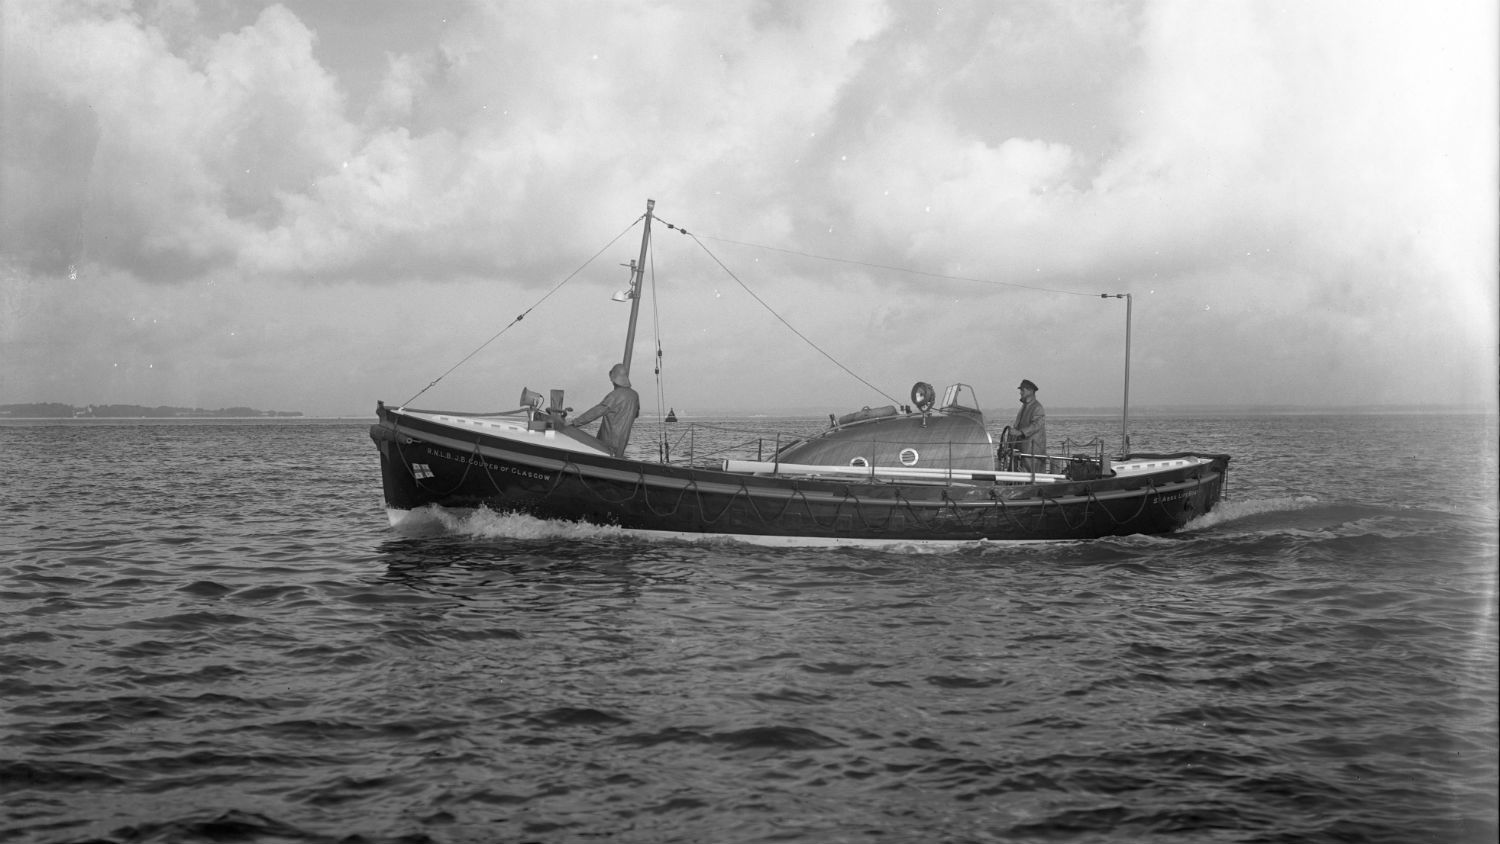 Black and white image of St Abbs lifeboat, JB Couper of Glasgow, while on trials